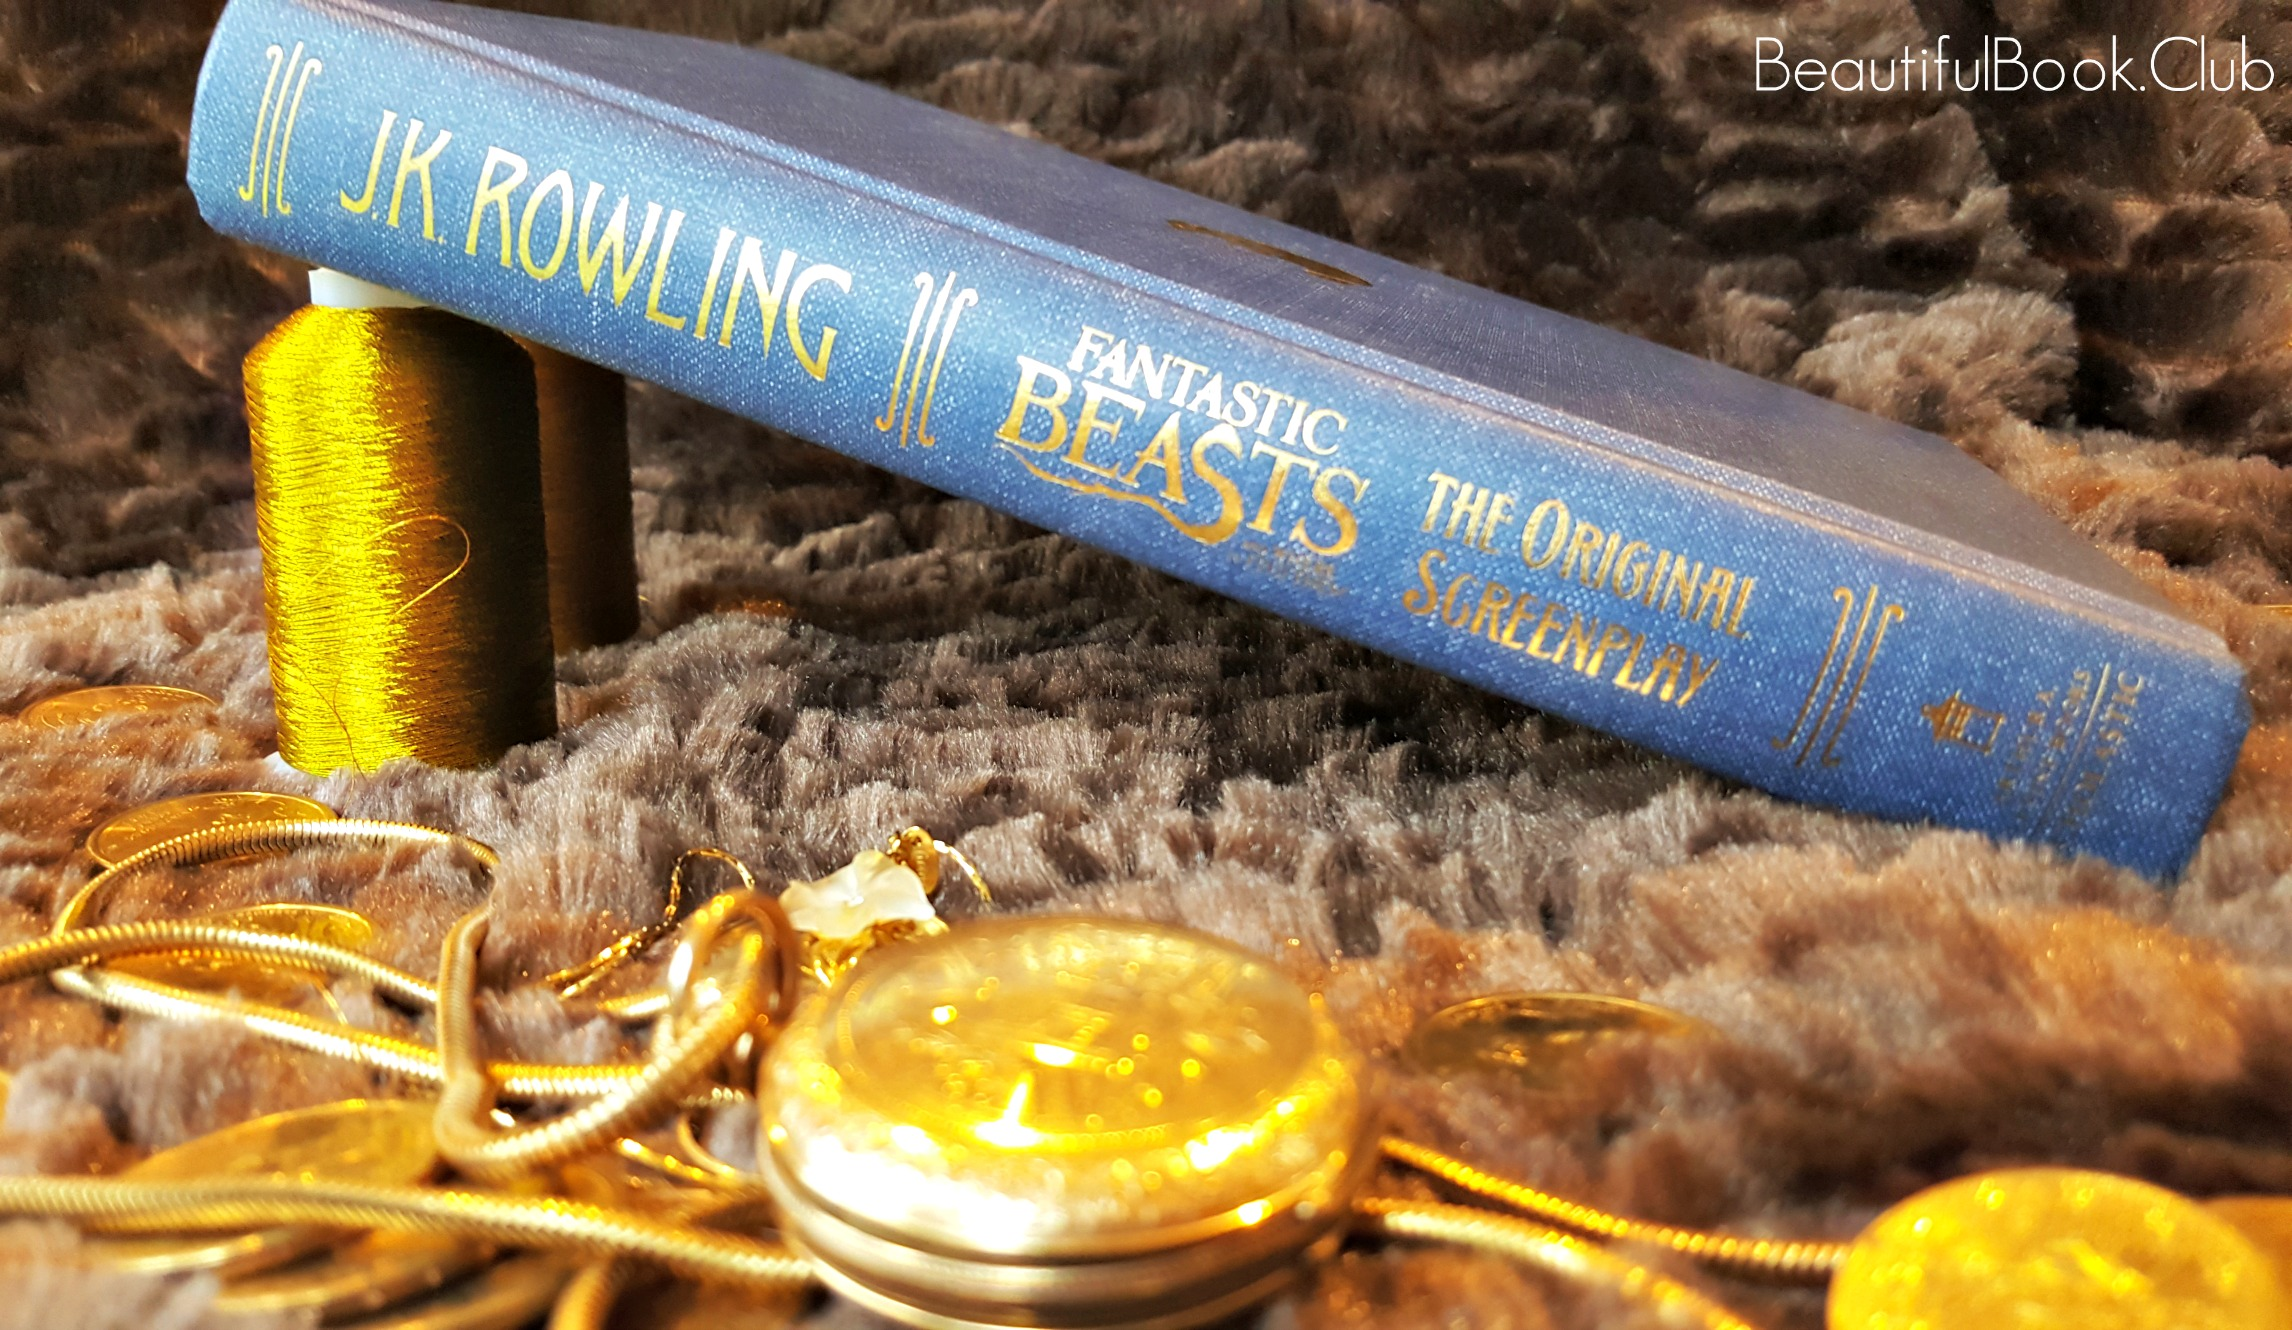 Fantastic Beasts spine without cover